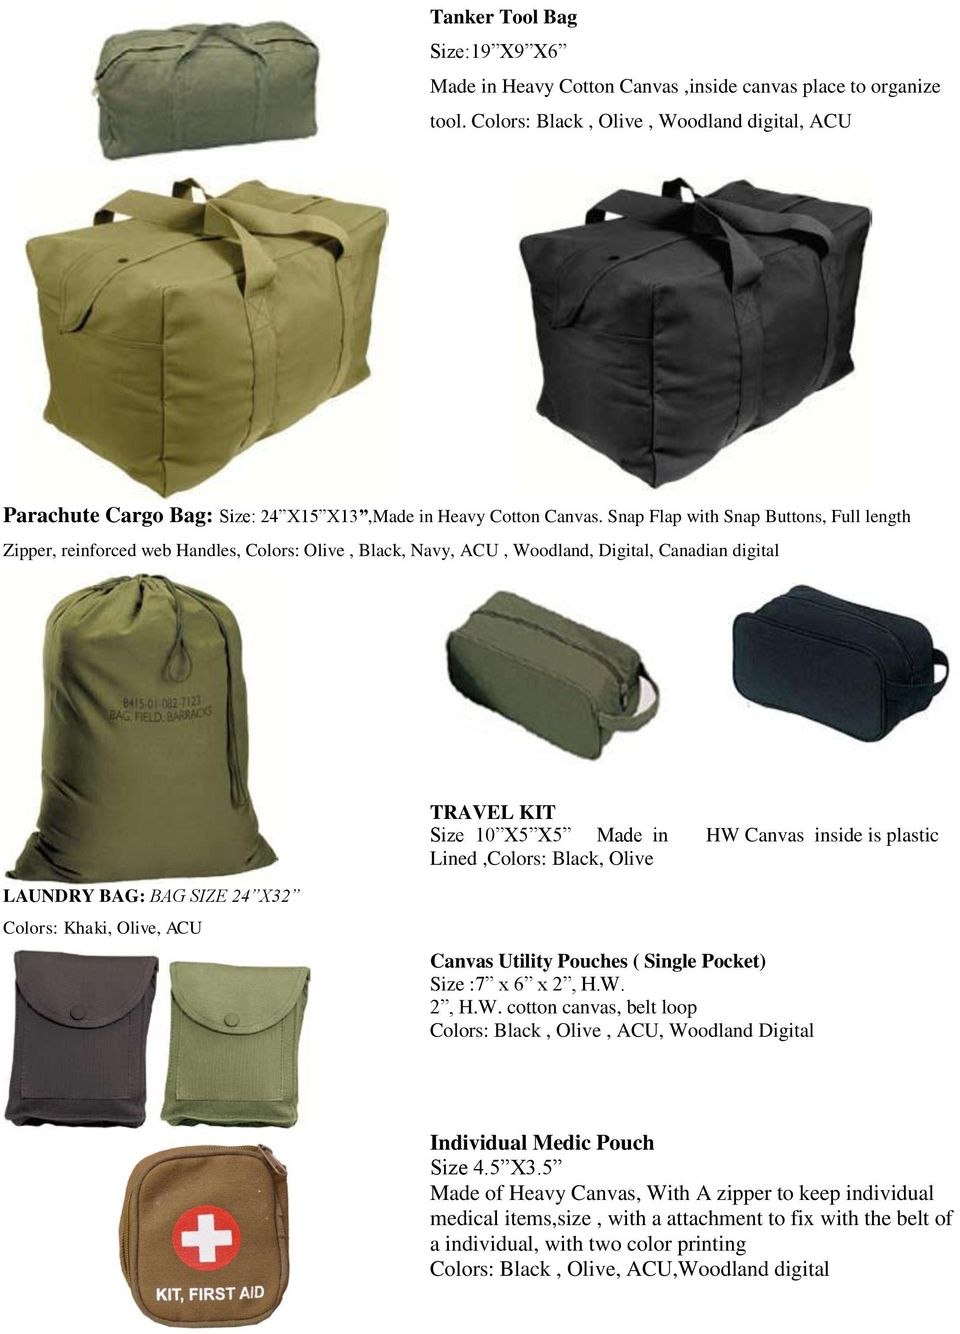 Snap Flap with Snap Buttons, Full length Zipper, reinforced web Handles, Colors: Olive, Black, Navy, ACU, Woodland, Digital, Canadian digital TRAVEL KIT Size 10 X5 X5 Made in Lined,Colors: Black,